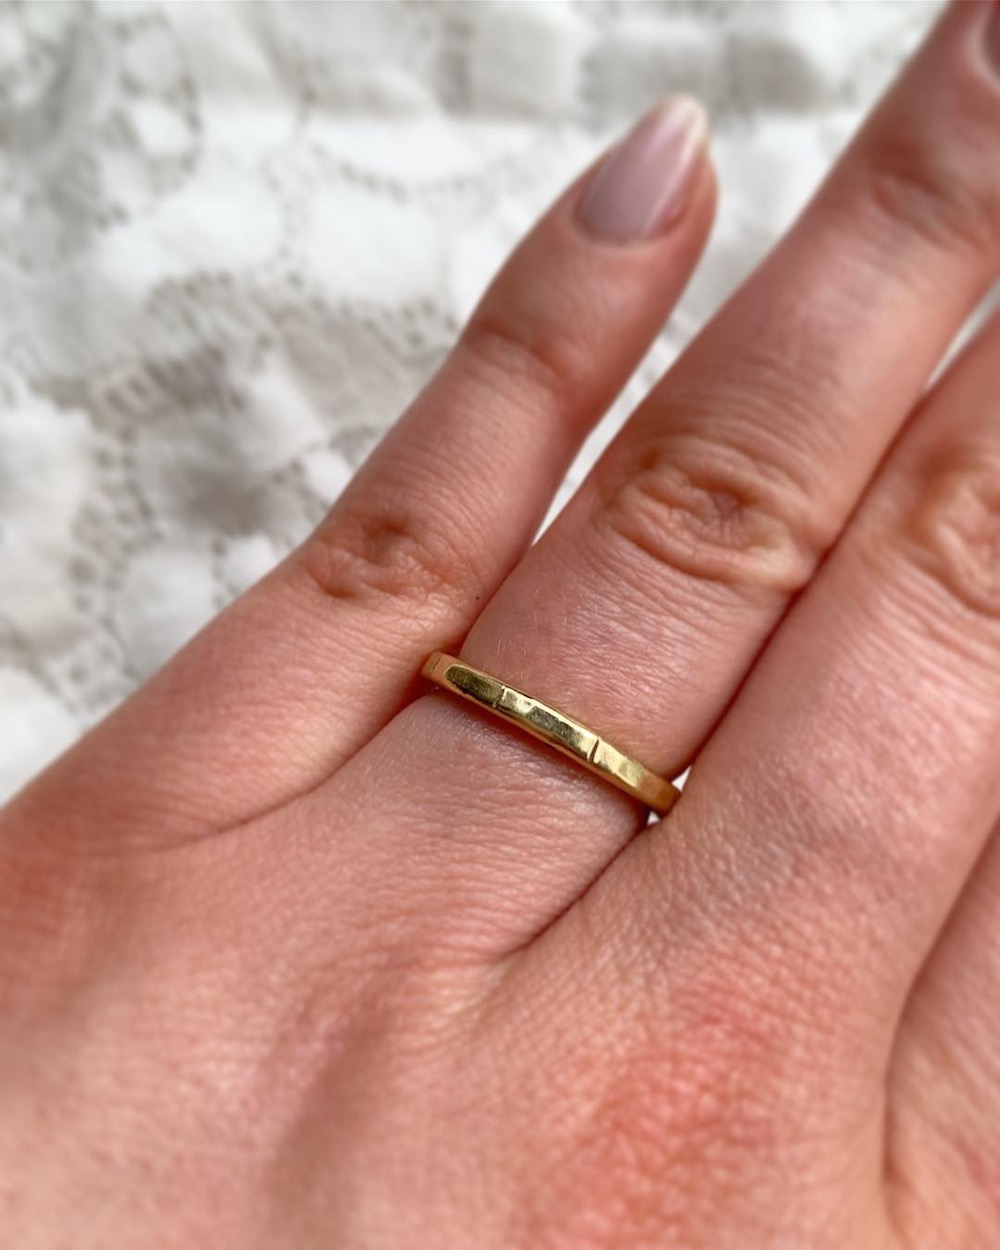 Texture Wedding Band Unique Gold Ring Jewelry Gold Wedding Band Wide Gold Band Unisex Wedding Band His and Hers Wedding ring Engagement Ring